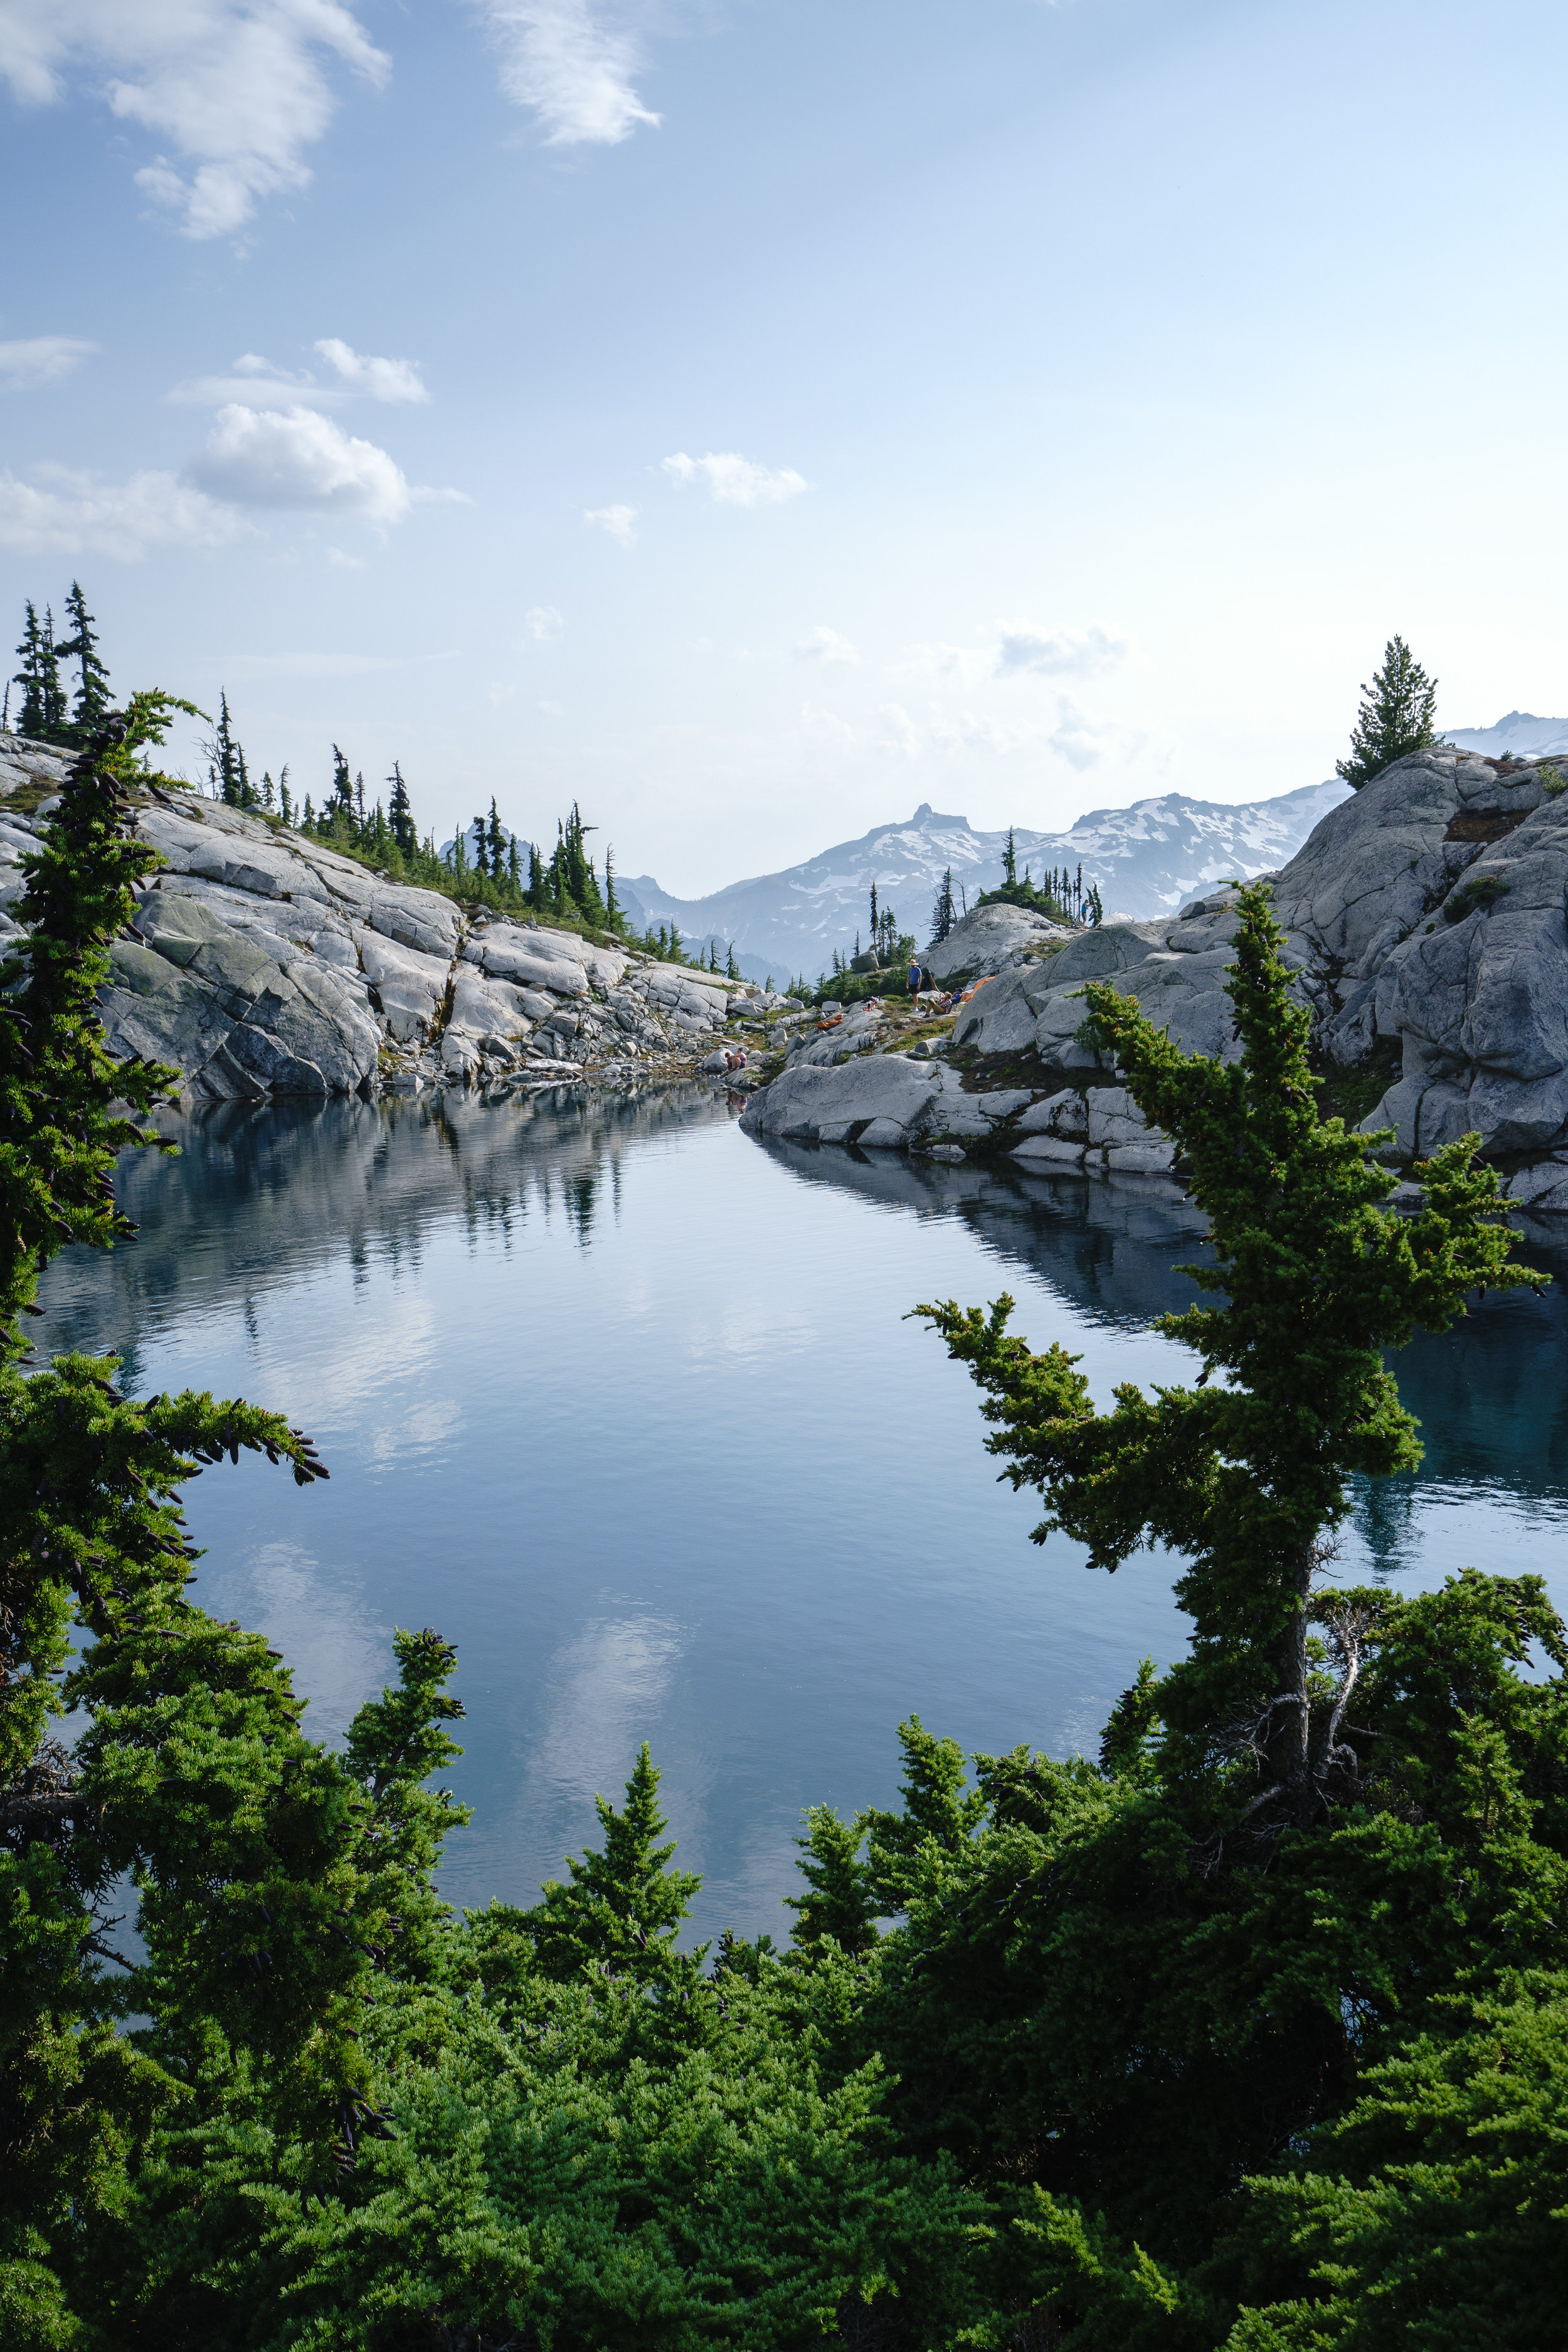 DATE HIKED: 7/27-29TOTAL DISTANCE:16TOTAL ASCENT:4,173DIFFICULTY:DIFFICULTREQUIRED PERMIT:ATTAINED AT TRAILHEADDOG FRIENDLY:DOGS ALLOWED: YES /ROUGH TRAIL + GOATS MAKE IT NOT SO DOG FRIENDLYLOCATION:ALPINE LAKES WILDERNESSRECREATION PASS:NORTHWEST FOREST PASS -